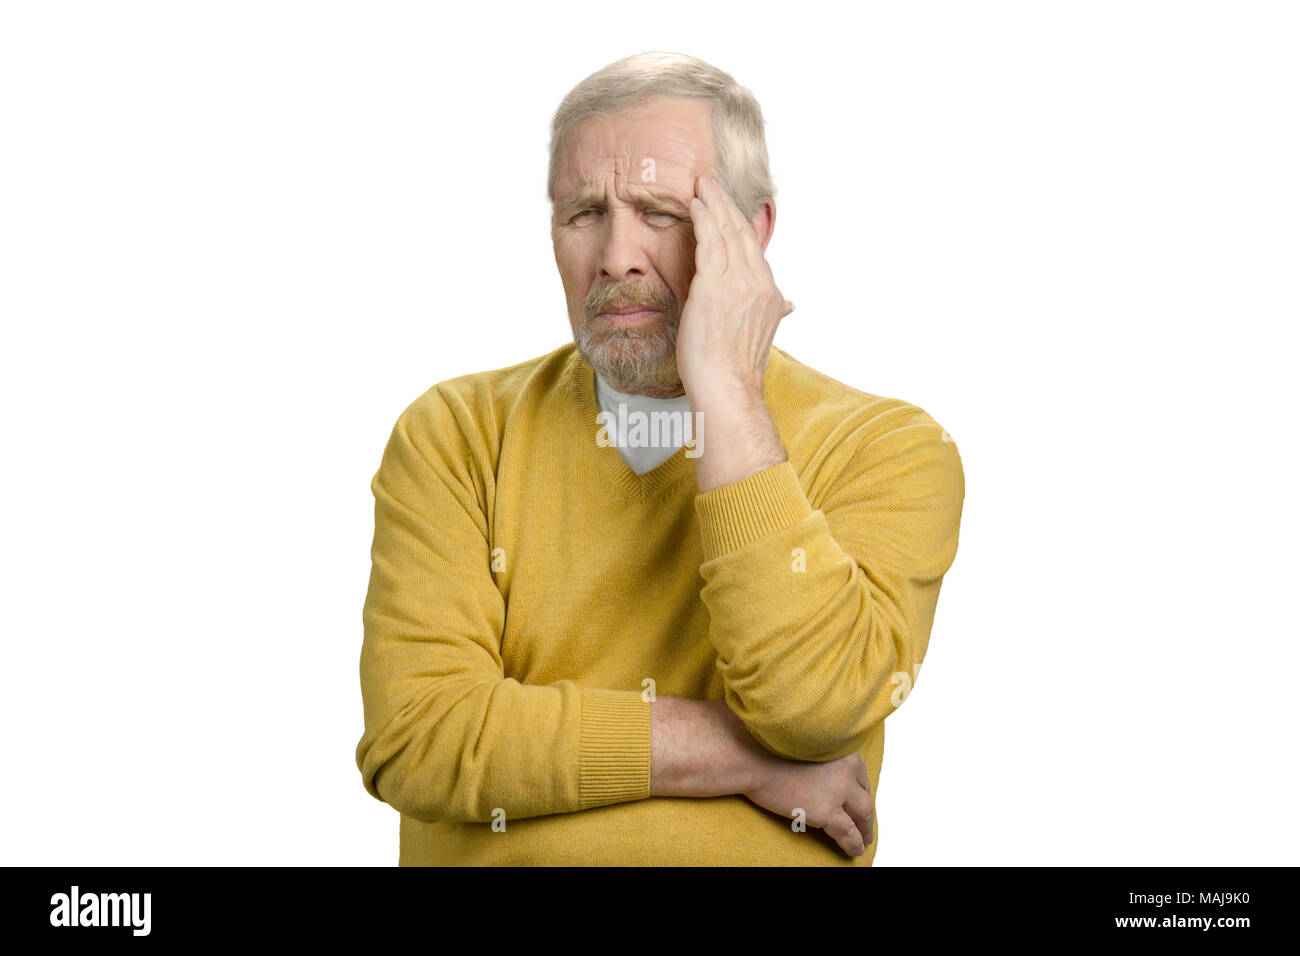 Old senior grandpa having headache. Sad and frustrated man. White isolated background. - Stock Image